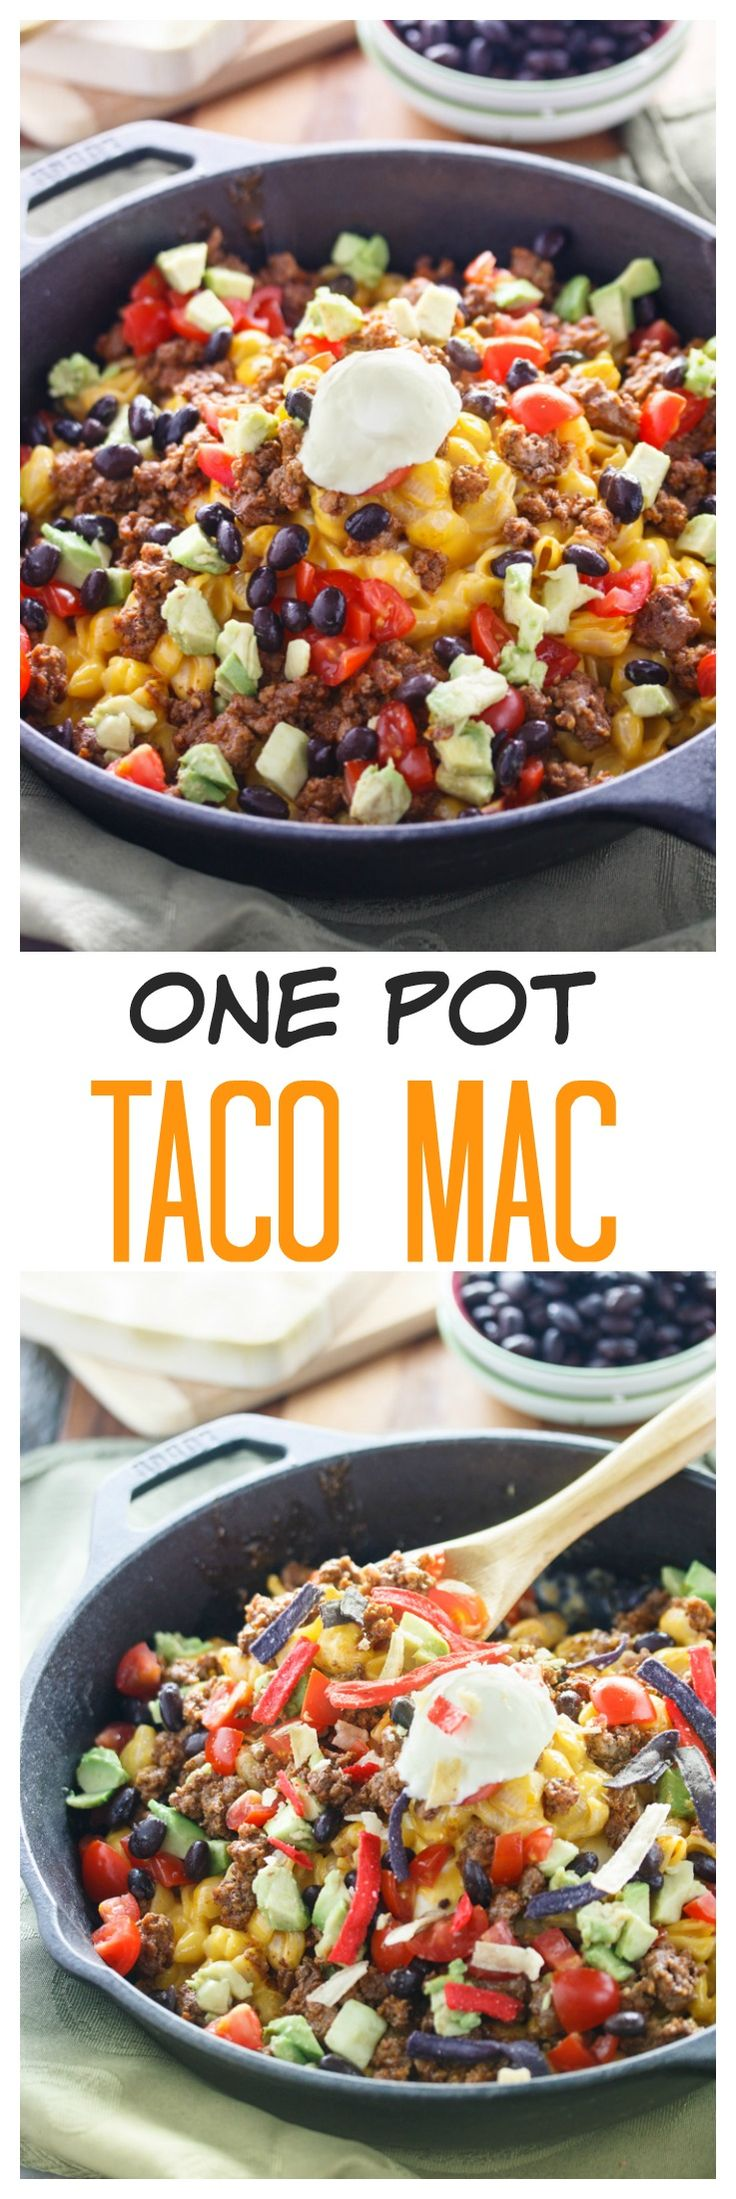 One Pot Taco Mac: Creamy macaroni and cheese loaded with mouth watering taco fixings, prepared in a single pot and perfect for your next Mexican night!